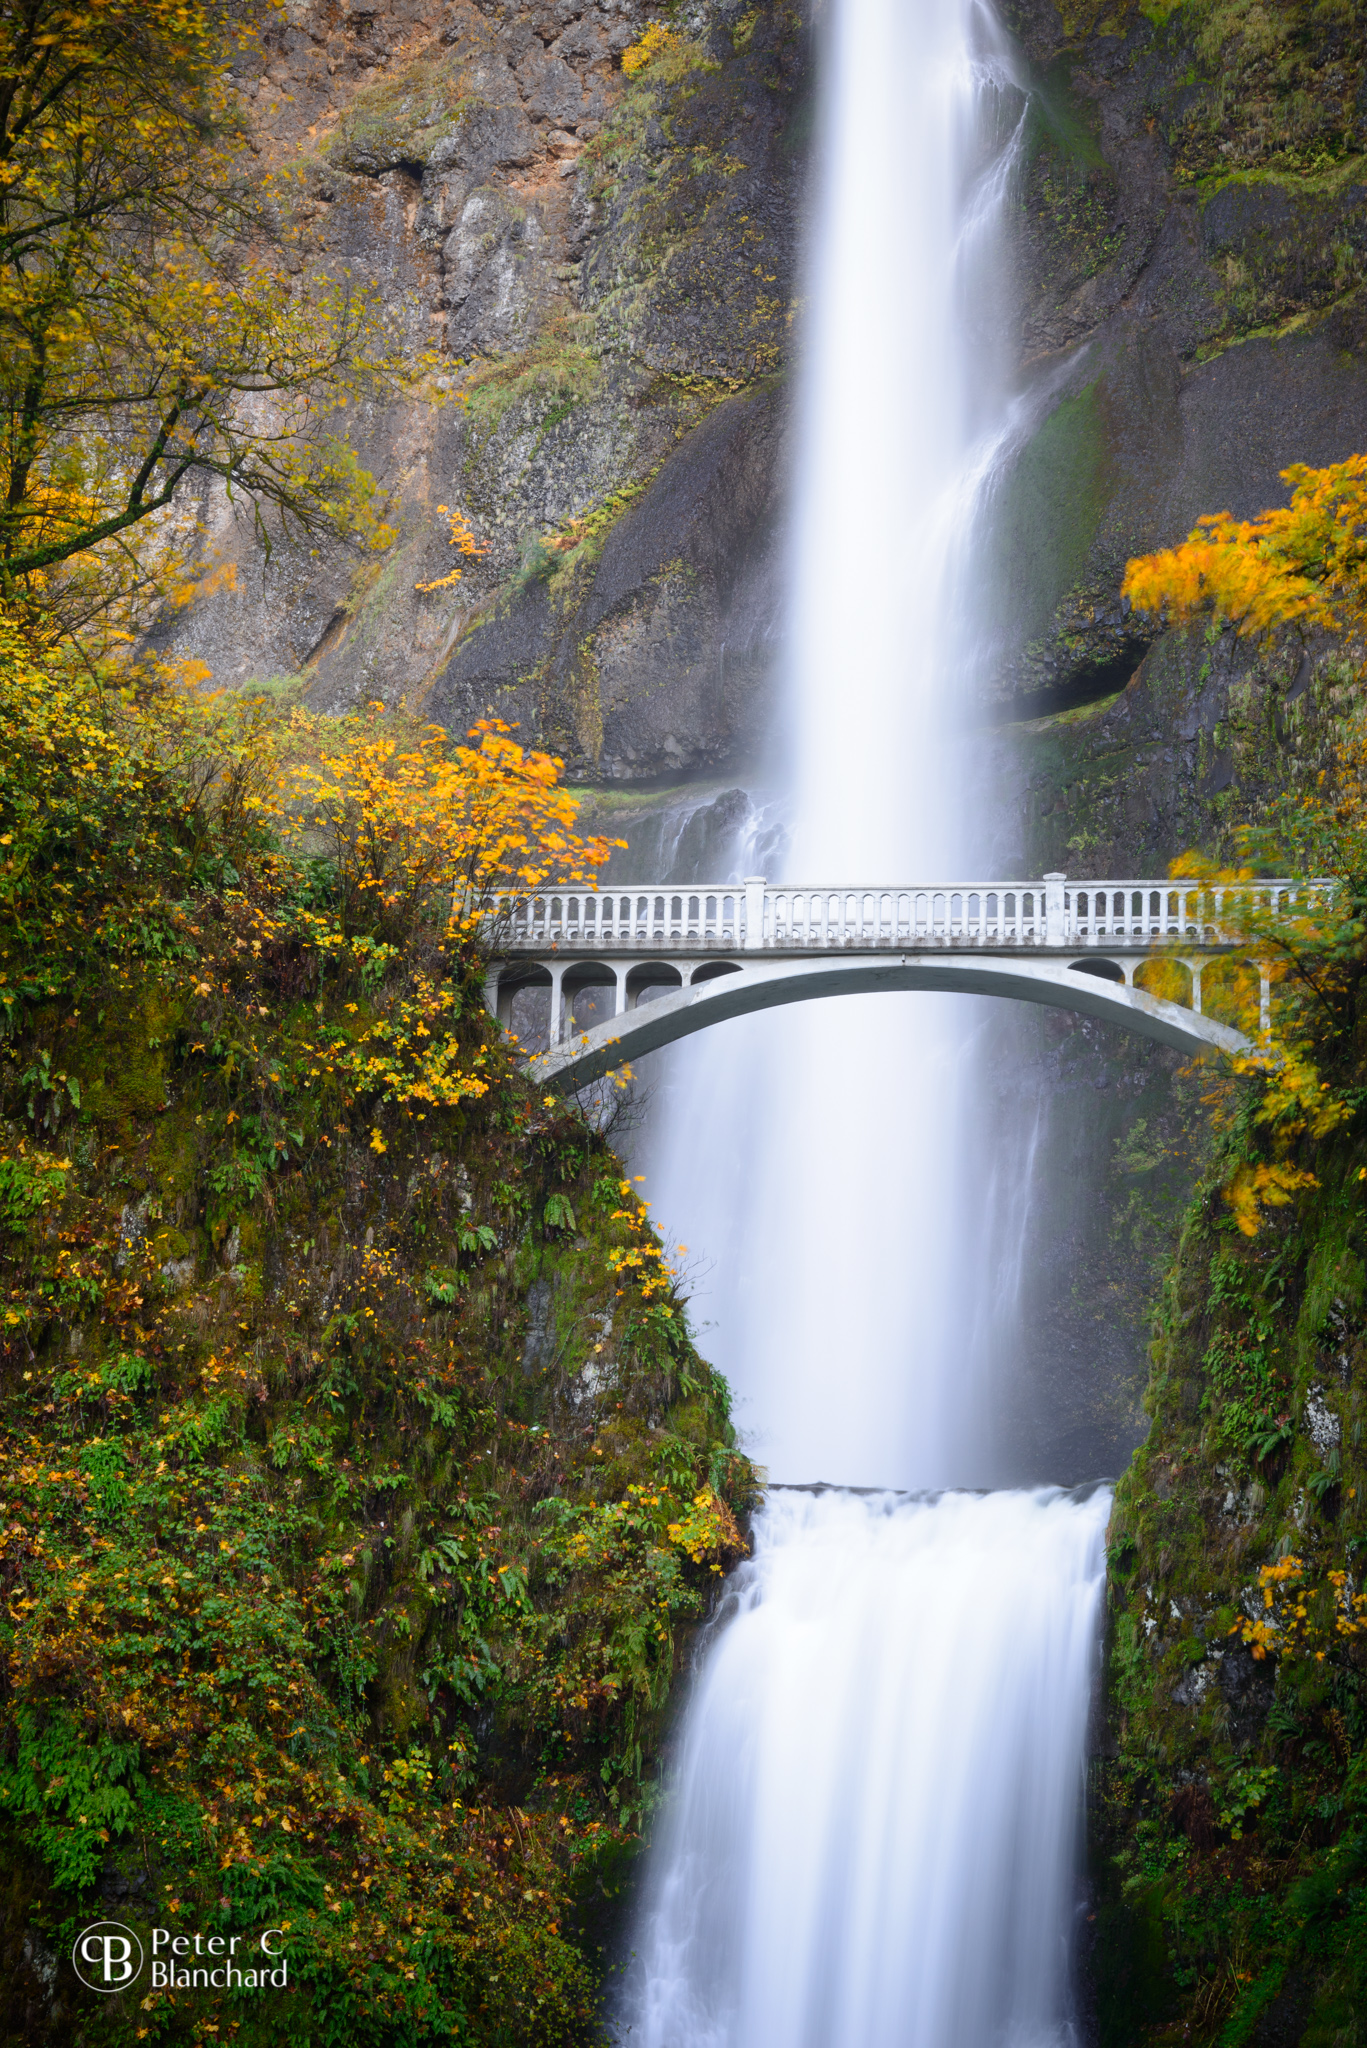 Multnomah Falls. The lodge has been spared, so far. It's unclear how the rest of the area is faring.